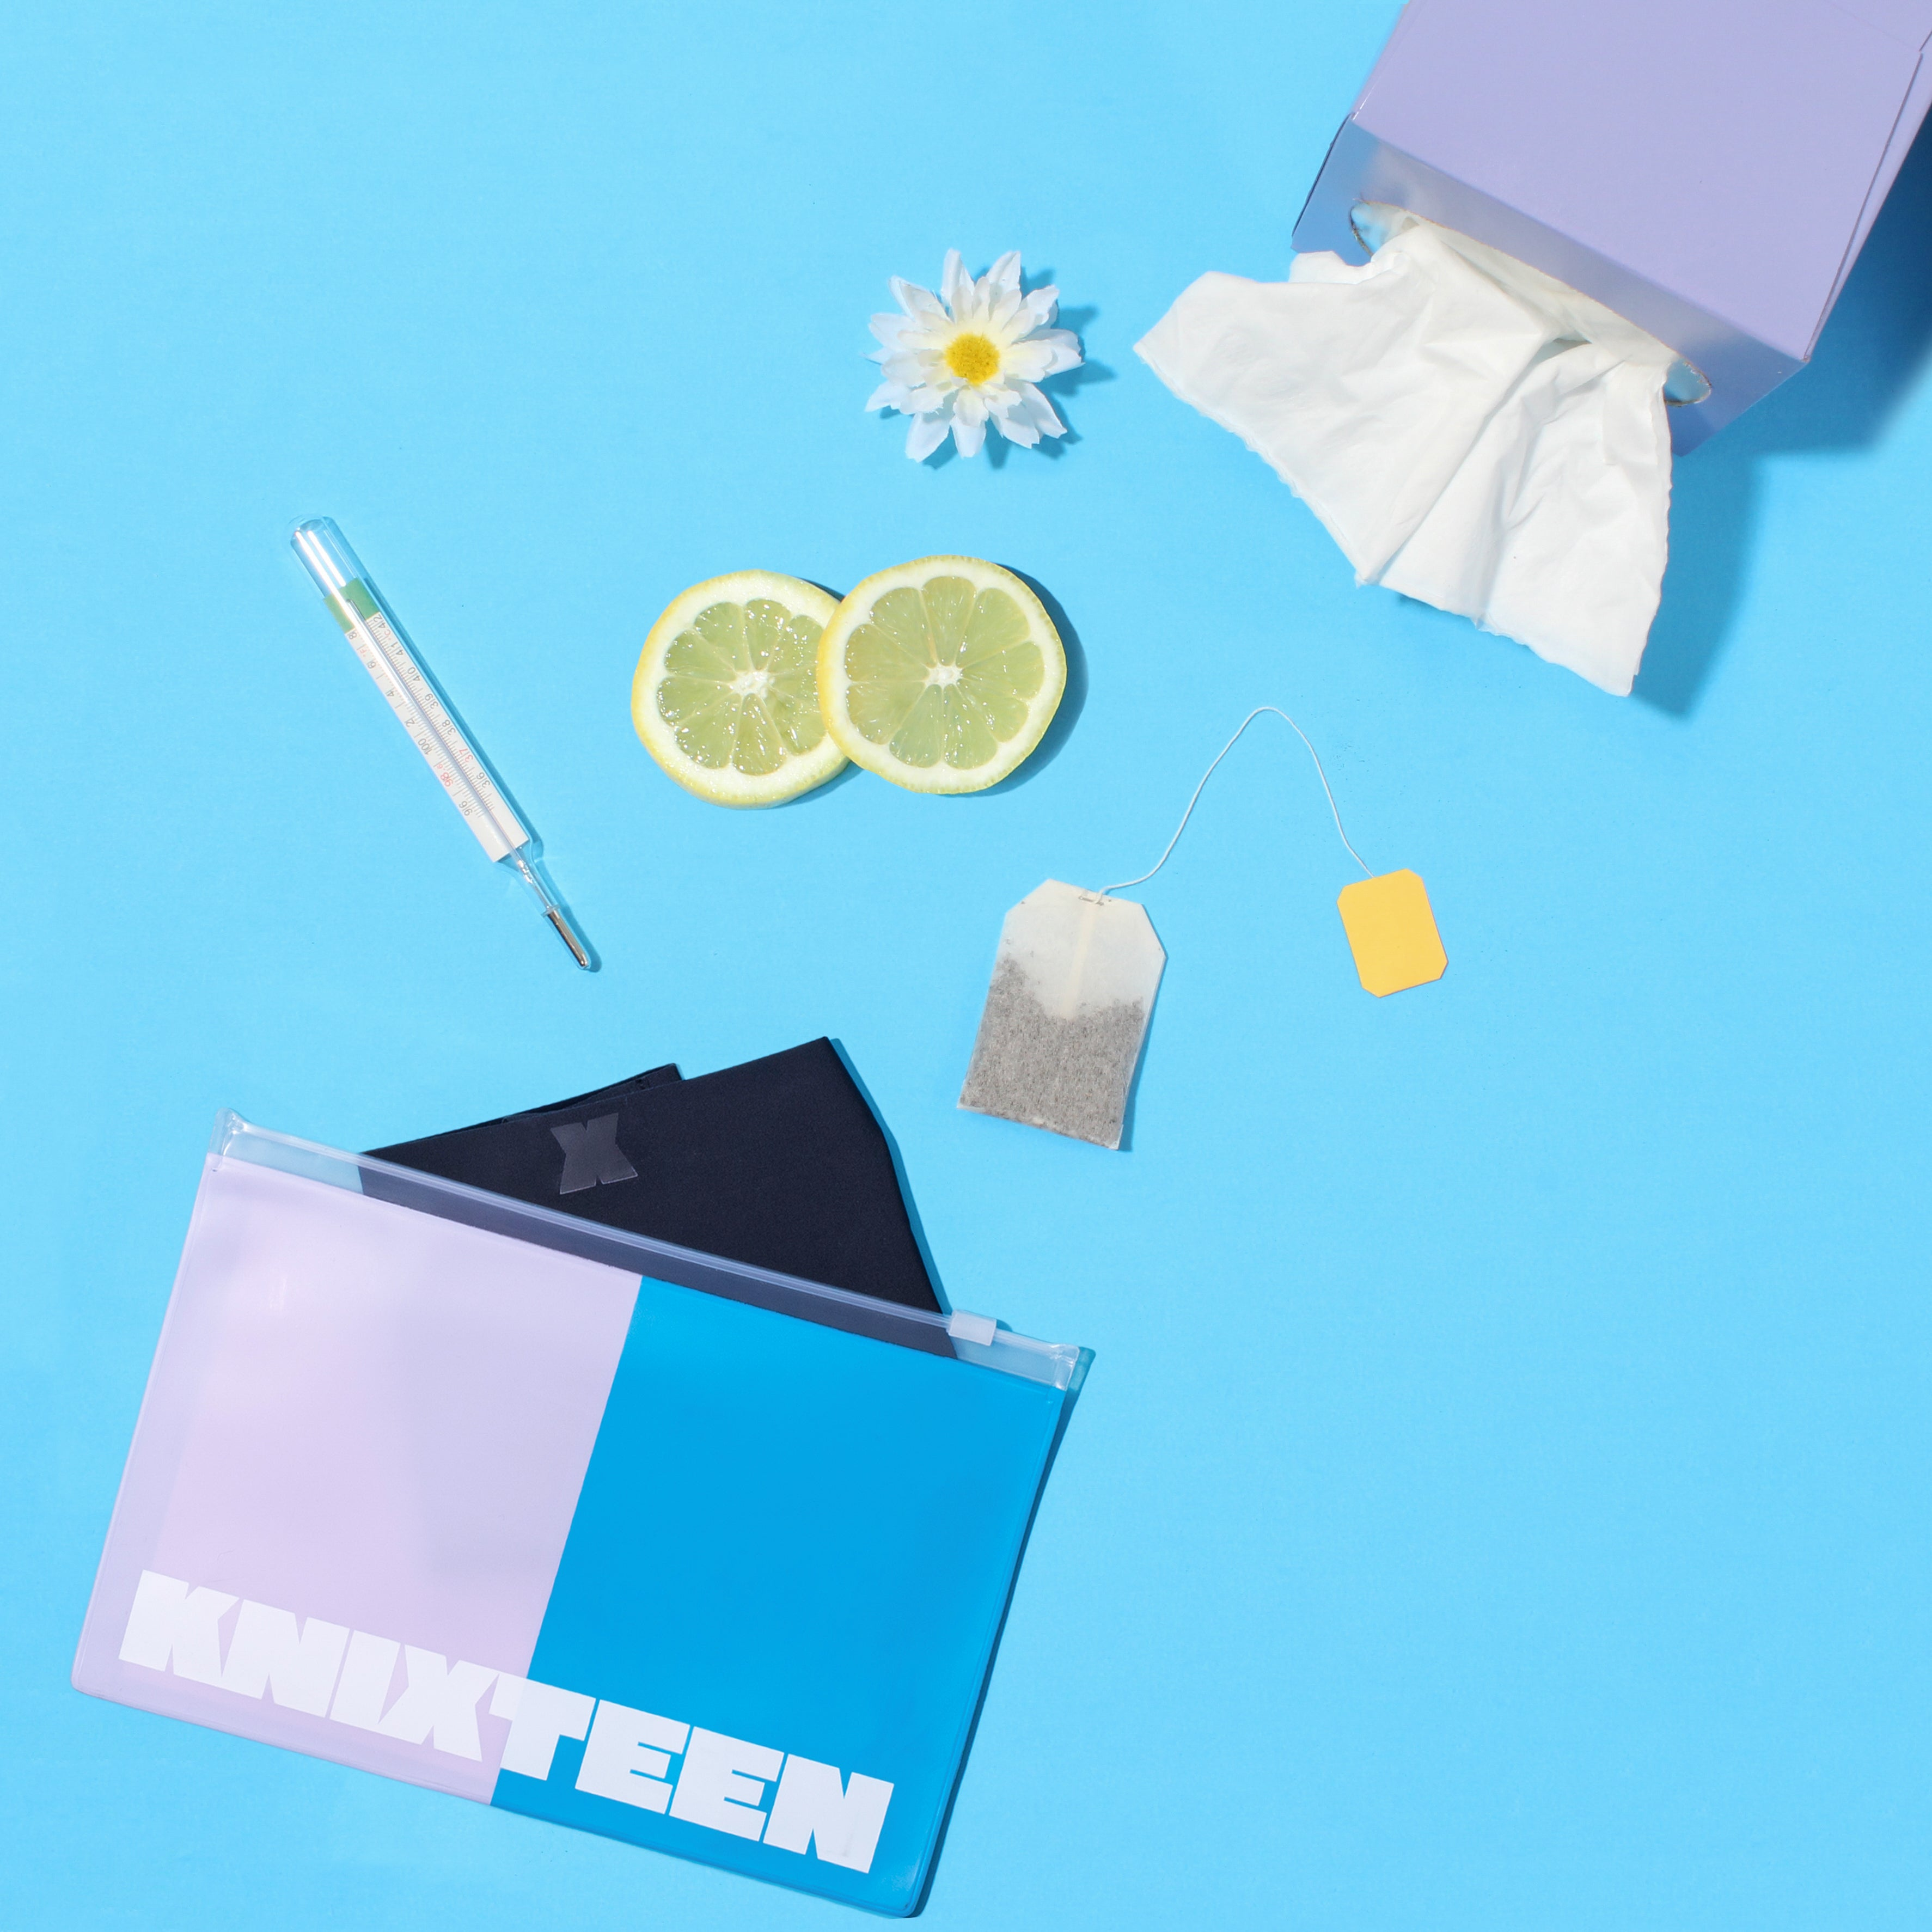 Can Your Period Make You Sick? - Period Colds Explained – Knixteen